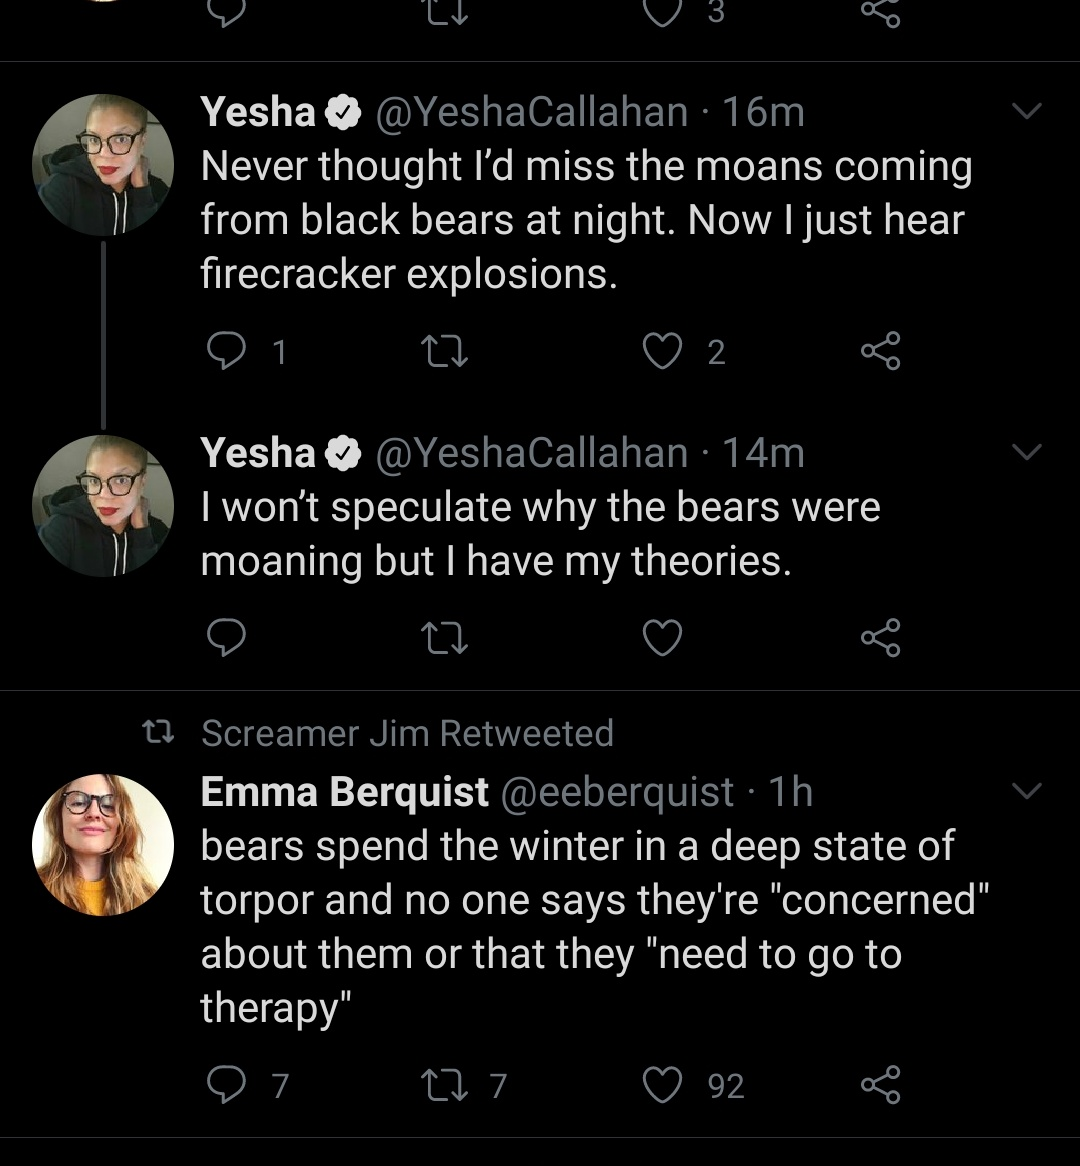 @YeshaCallahan Two tweets in a row of unadulterated bear content